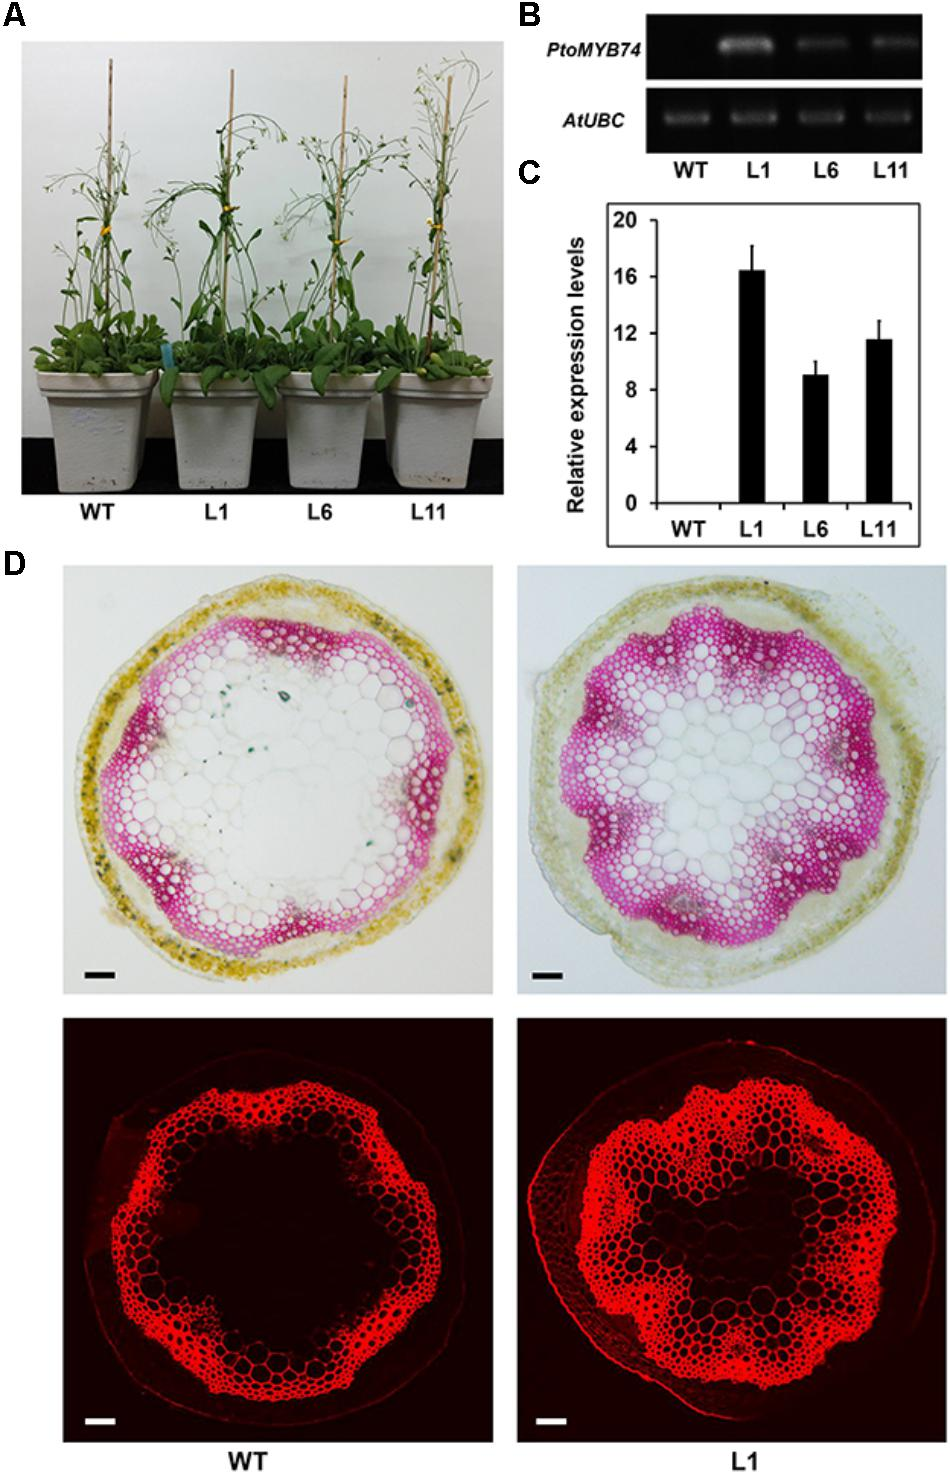 Frontiers | Ectopic Expression of PtoMYB74 in Poplar and Arabidopsis